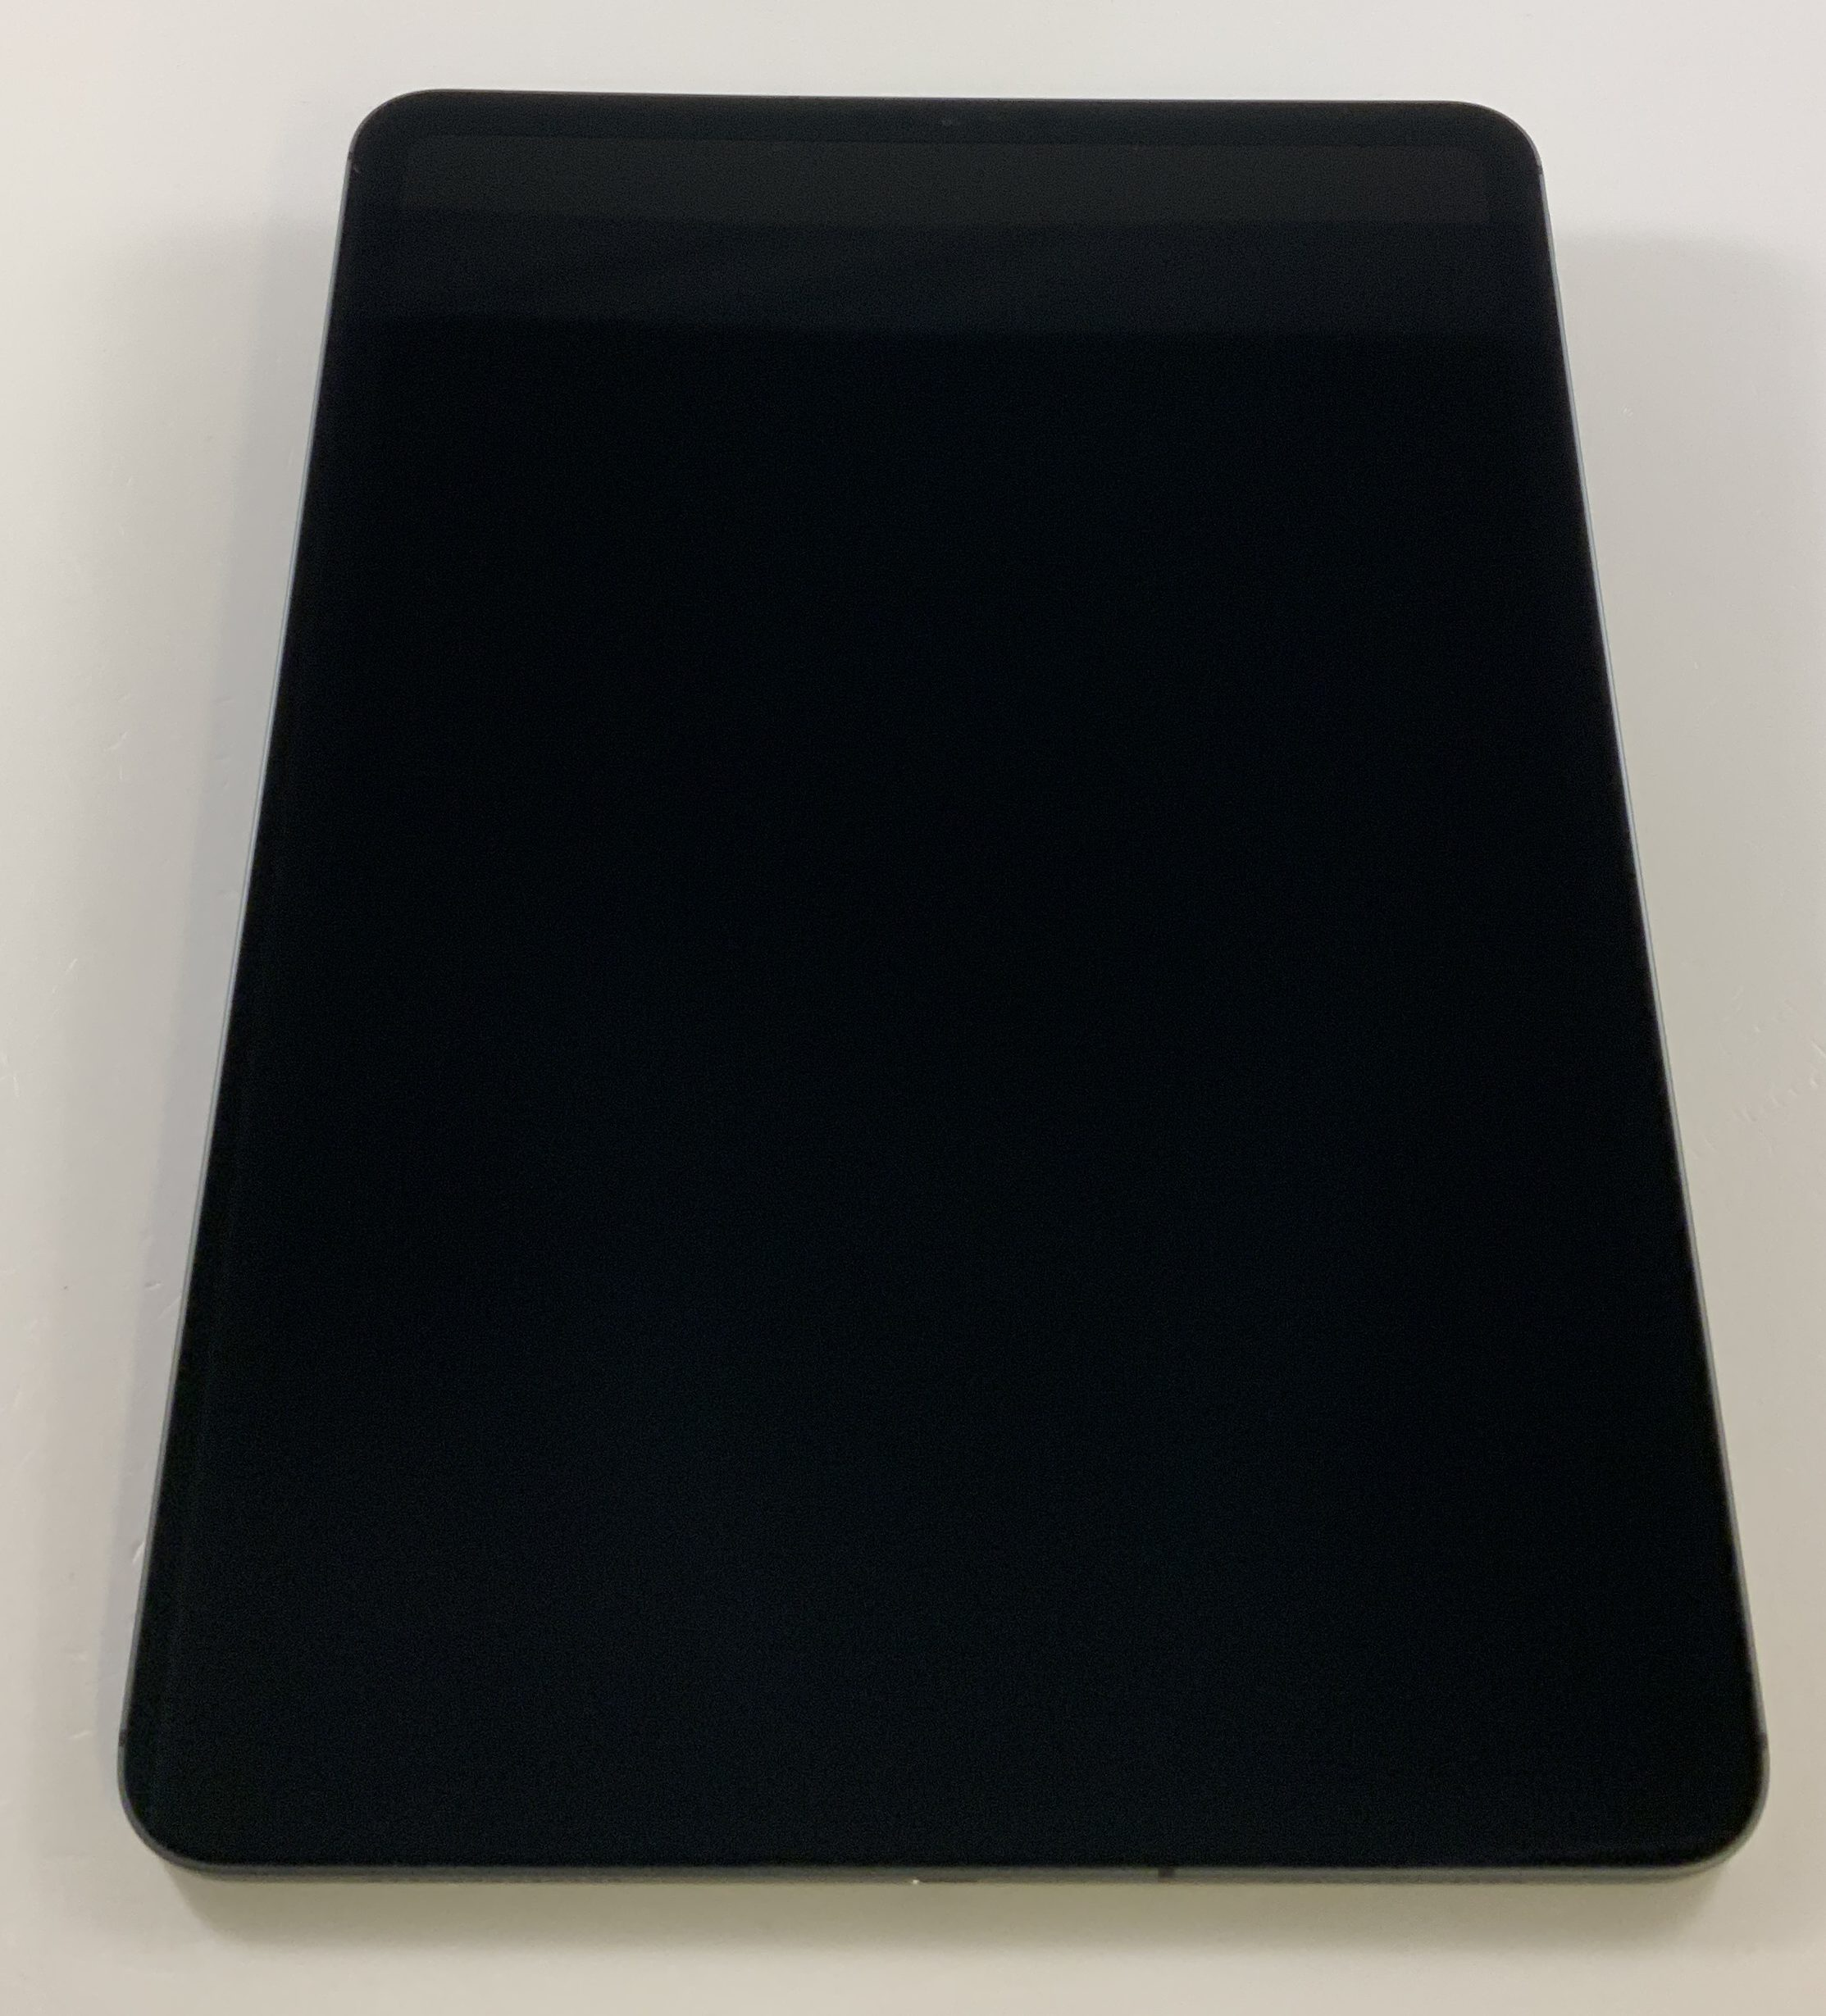 "iPad Pro 11"" Wi-Fi + Cellular 256GB, 256GB, Space Gray, bild 1"